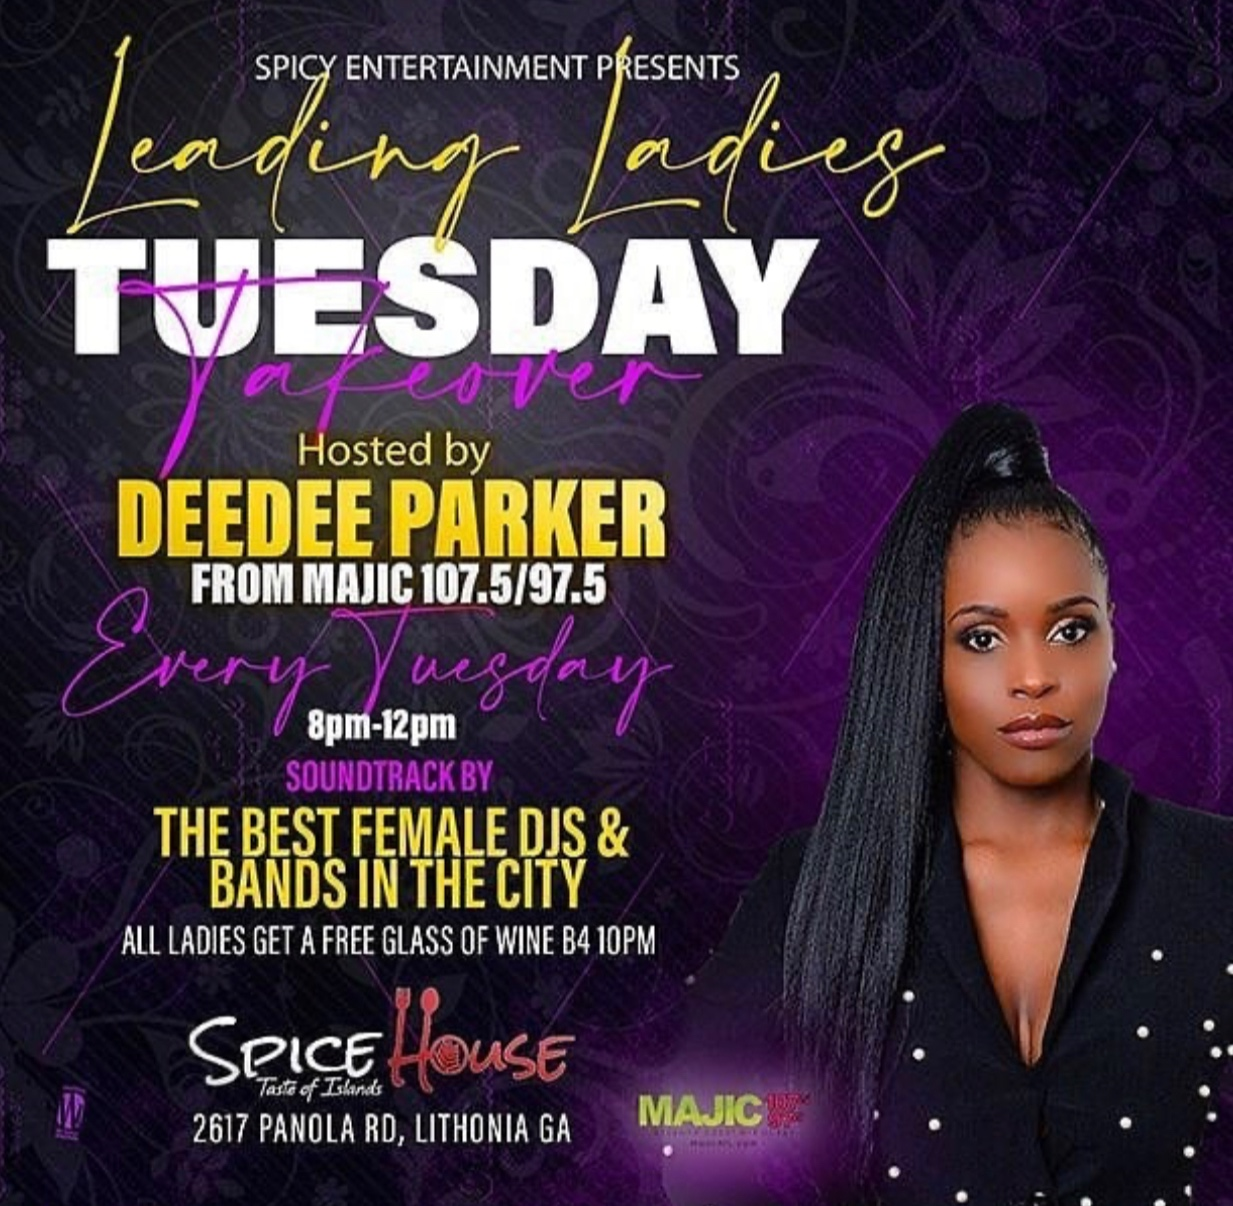 Leading Ladies Tuesday Takeover